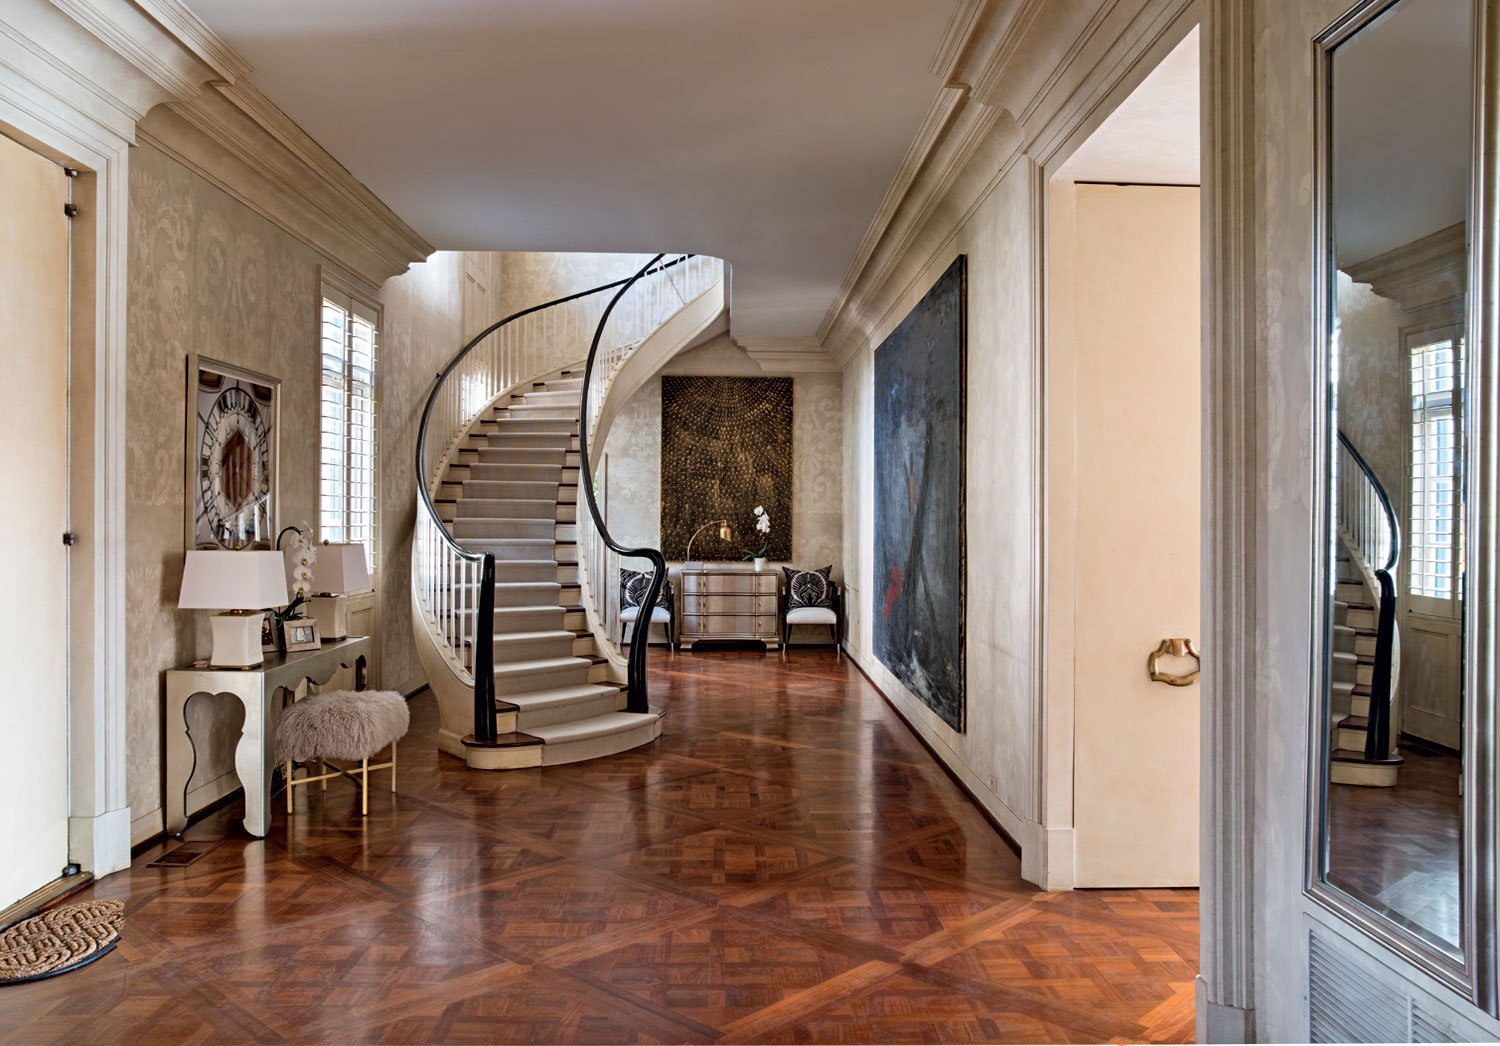 Development in Holmby Hills began in the early 20th century, its prime location evident from the start, with all compounds at least an acre in size, and has since become one of the most exclusive enclaves in the United States.